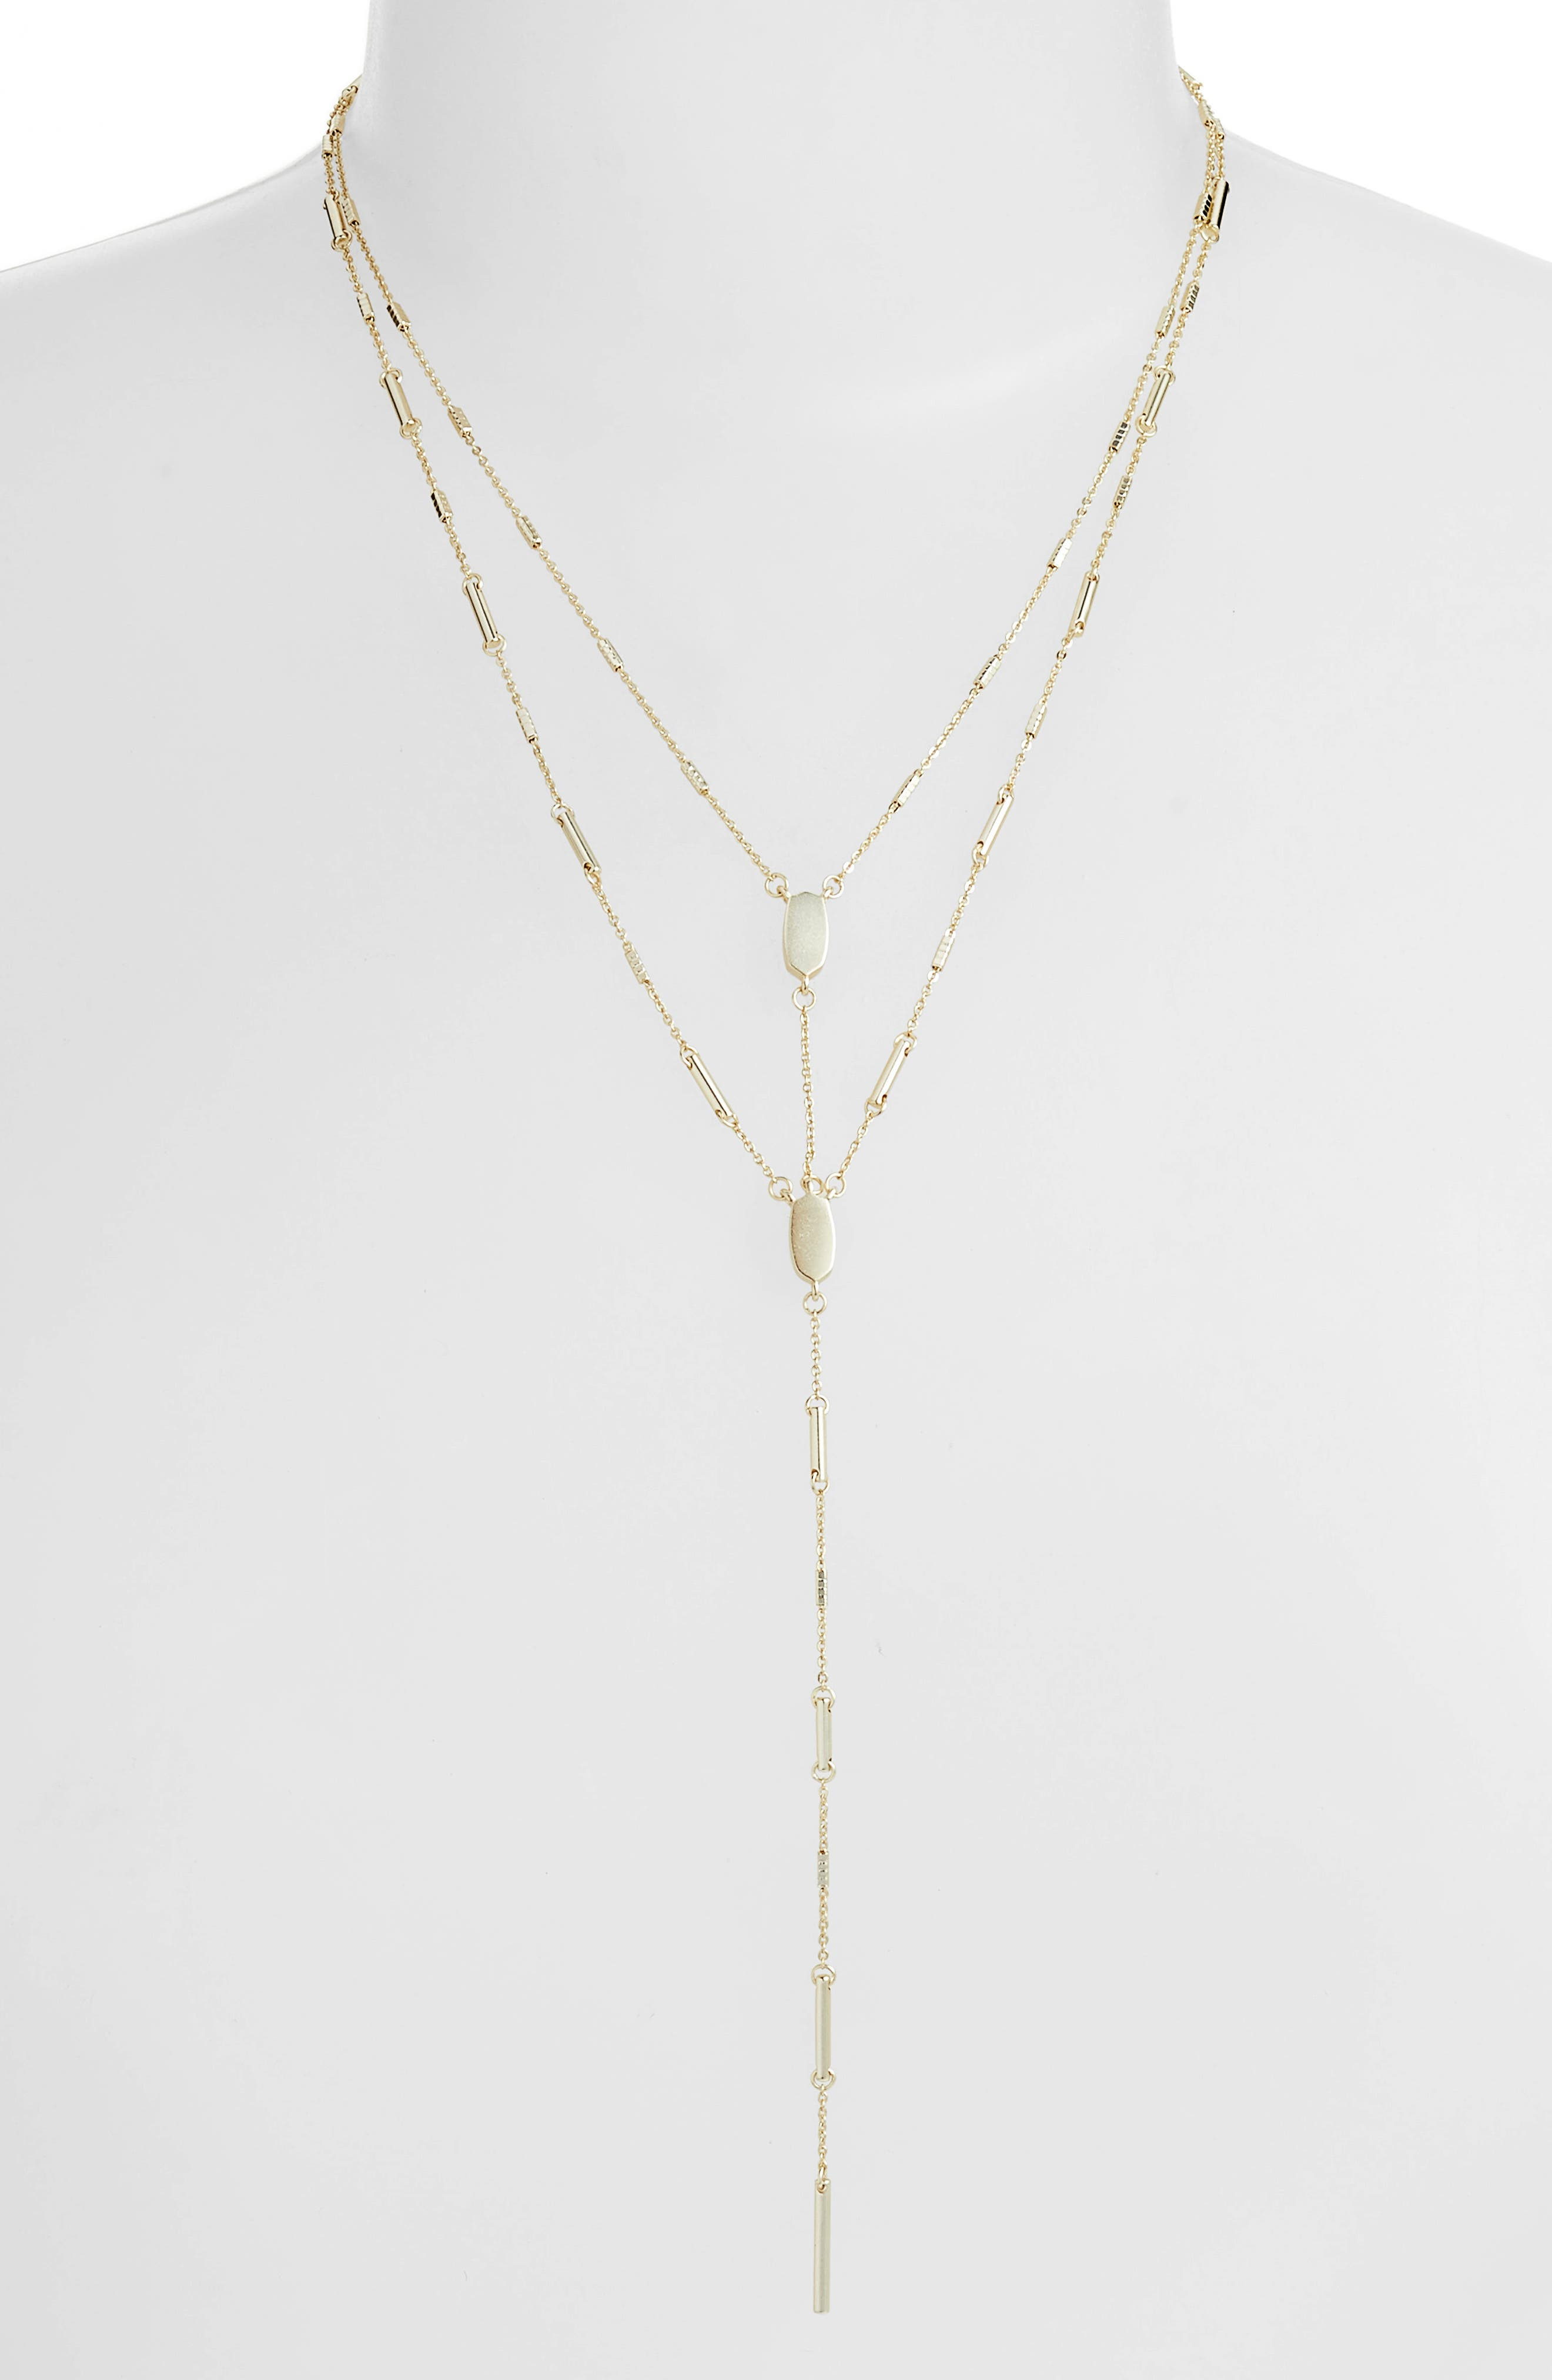 Adelia Multistrand Y-Necklace,                             Main thumbnail 1, color,                             GOLD